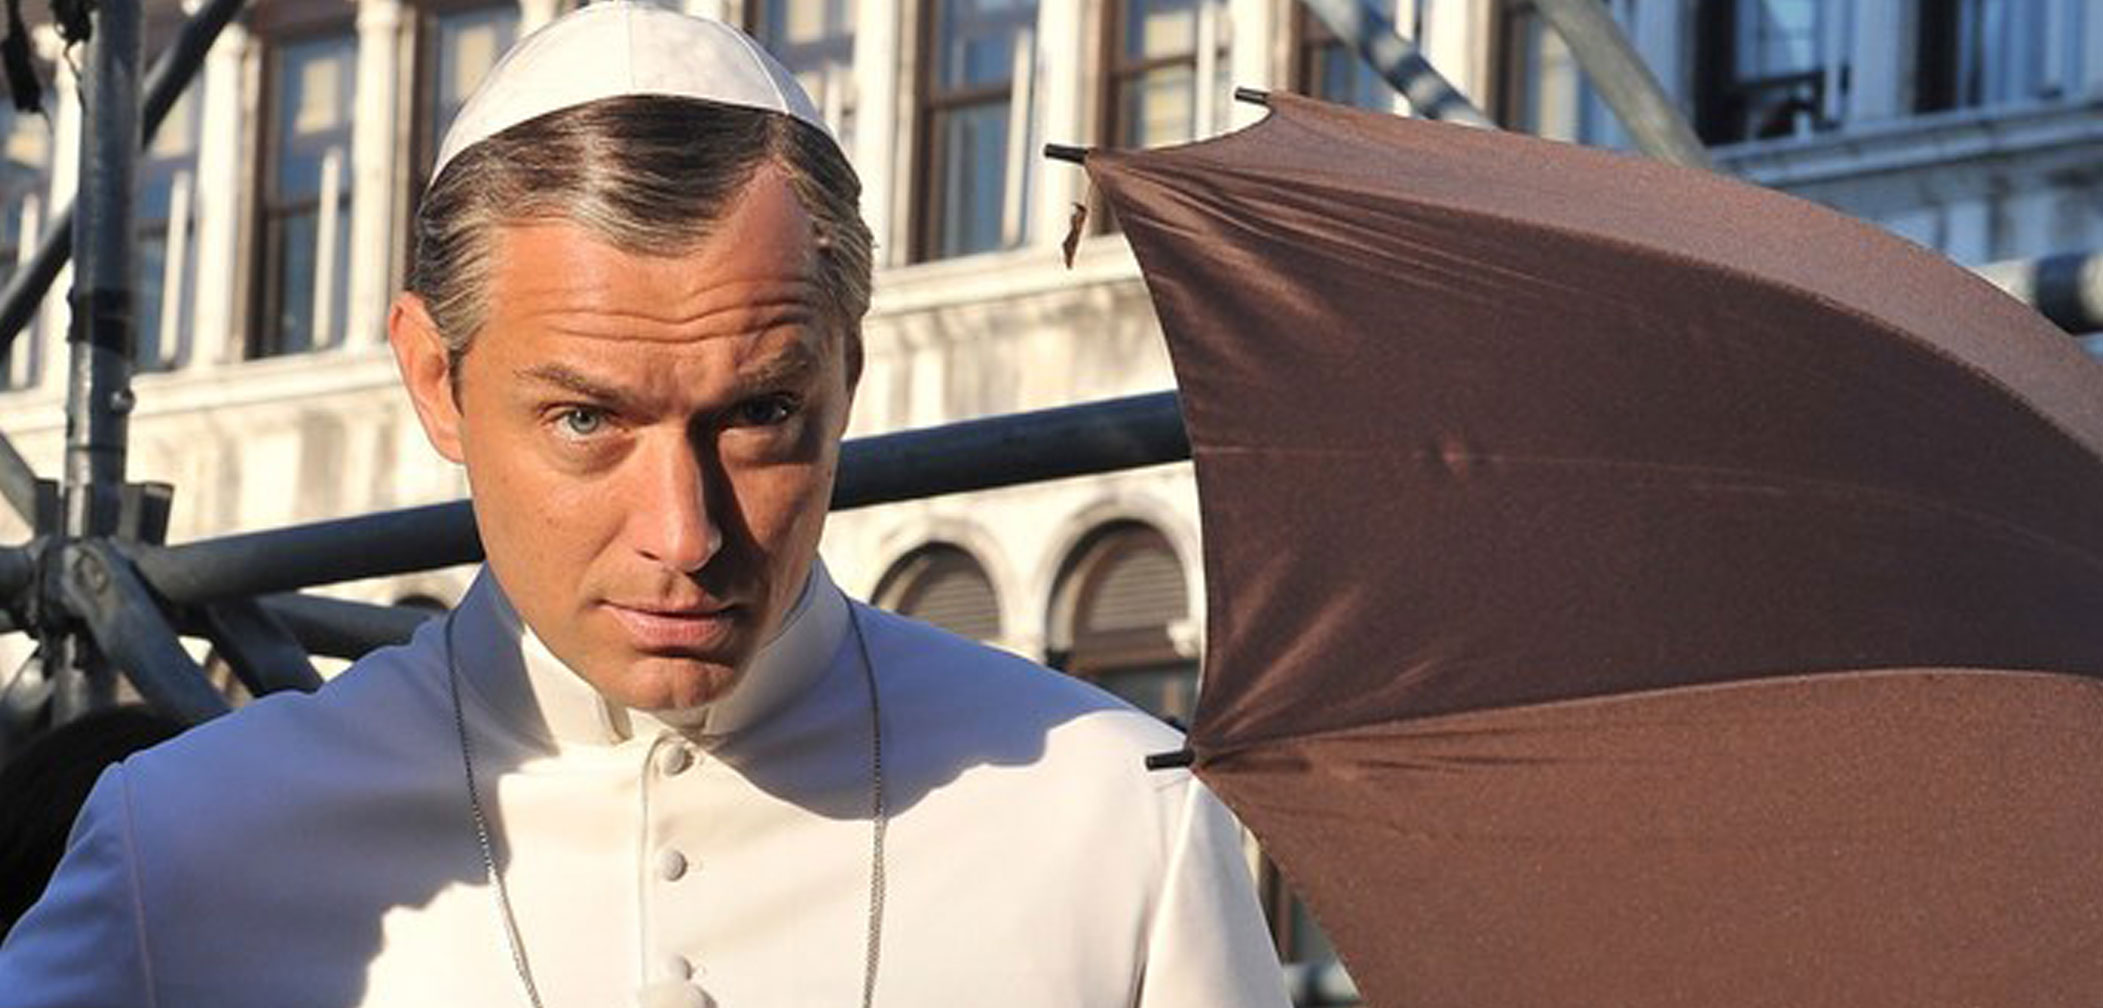 The Young Pope, HBO, Jude Law, butt, ass, naked, nude